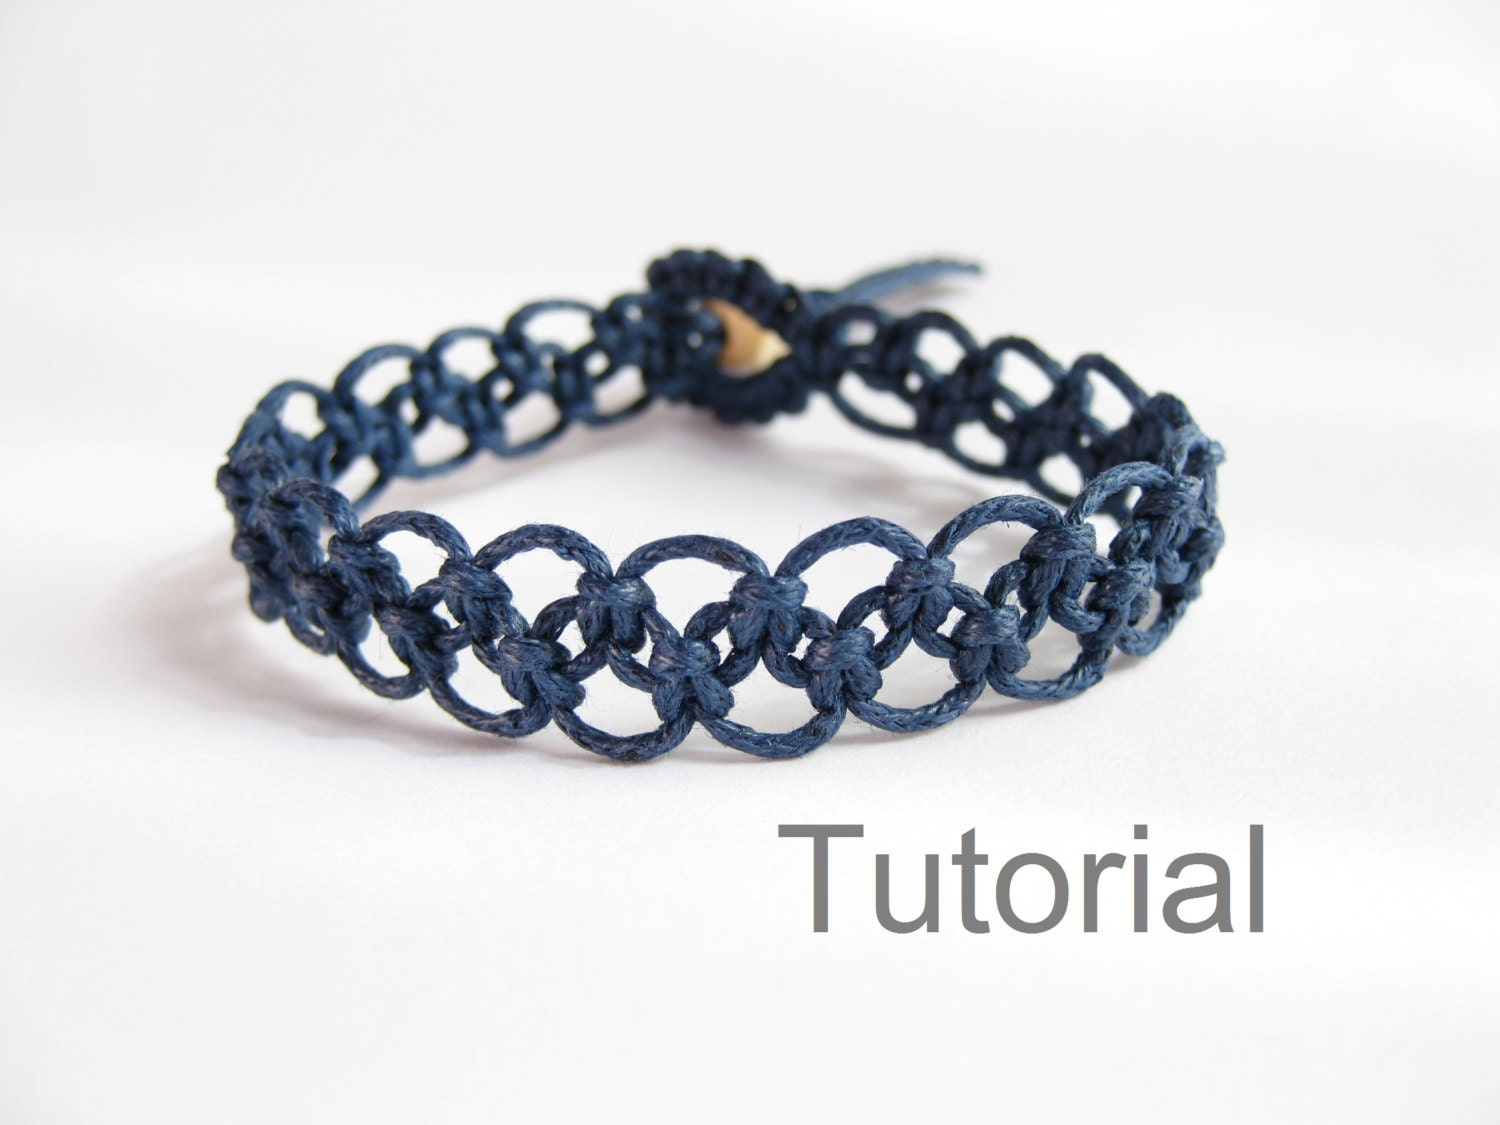 tutorial macrame bracelet pattern pdf easy navy blue knotted. Black Bedroom Furniture Sets. Home Design Ideas